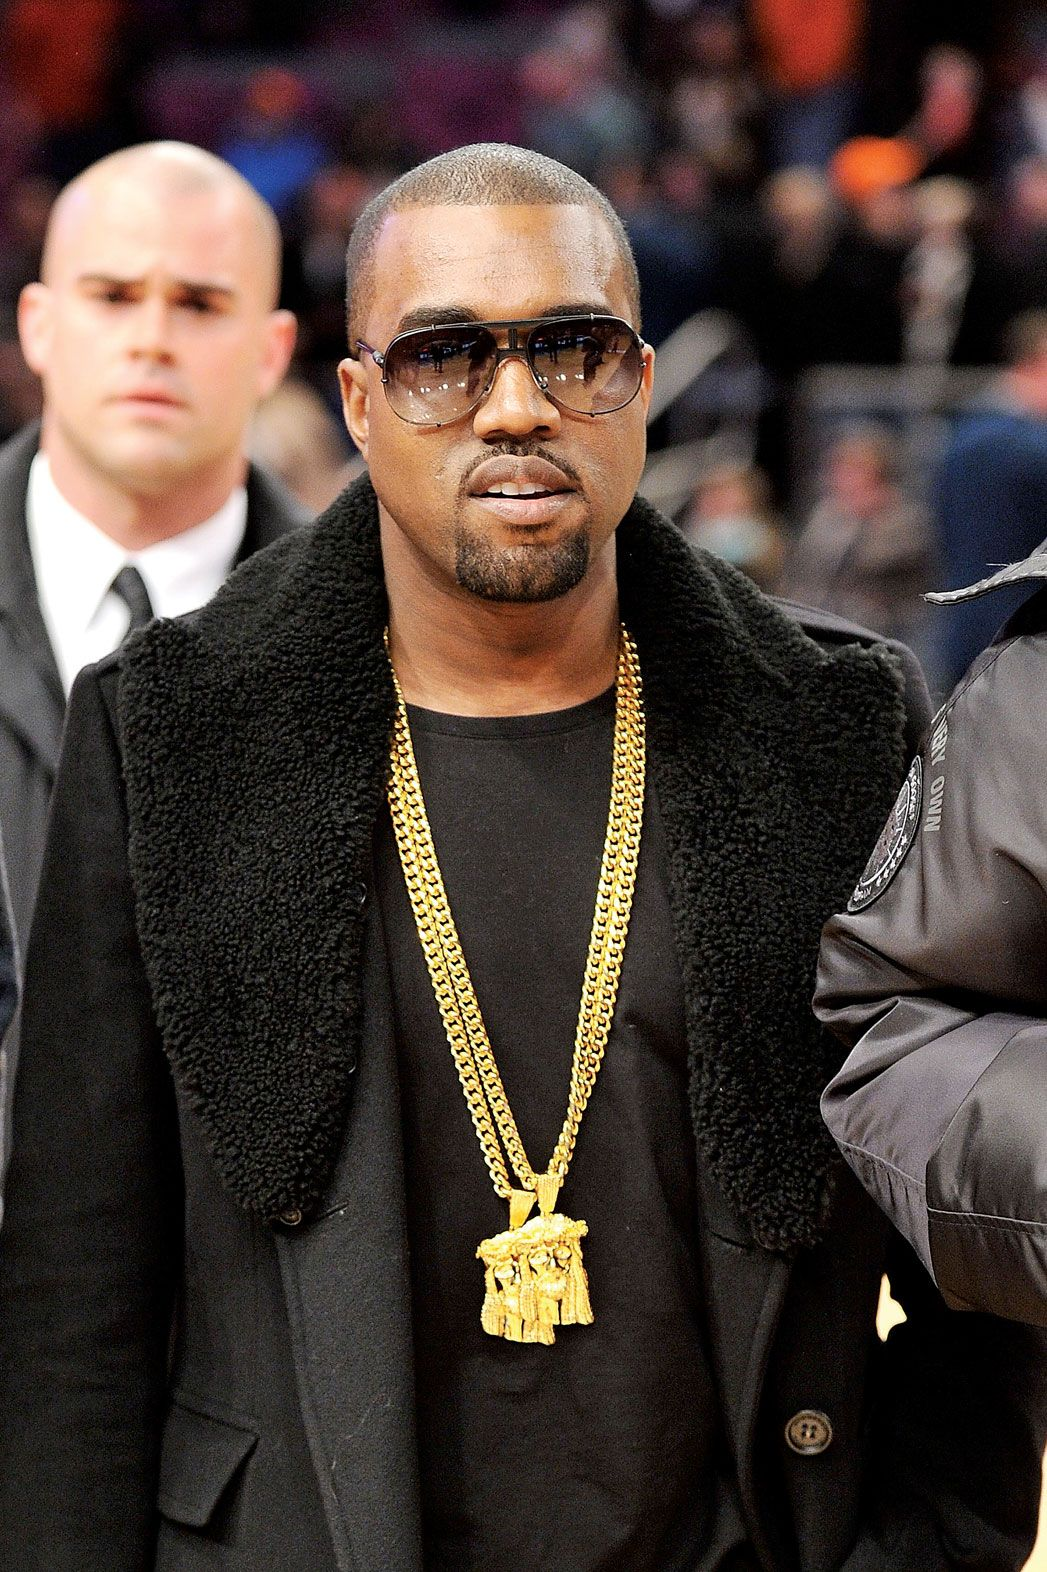 Protect Ya Neck 10 Rappers Who Get Baller Chains Right Kanye West Style Hip Hop Images Kanye West